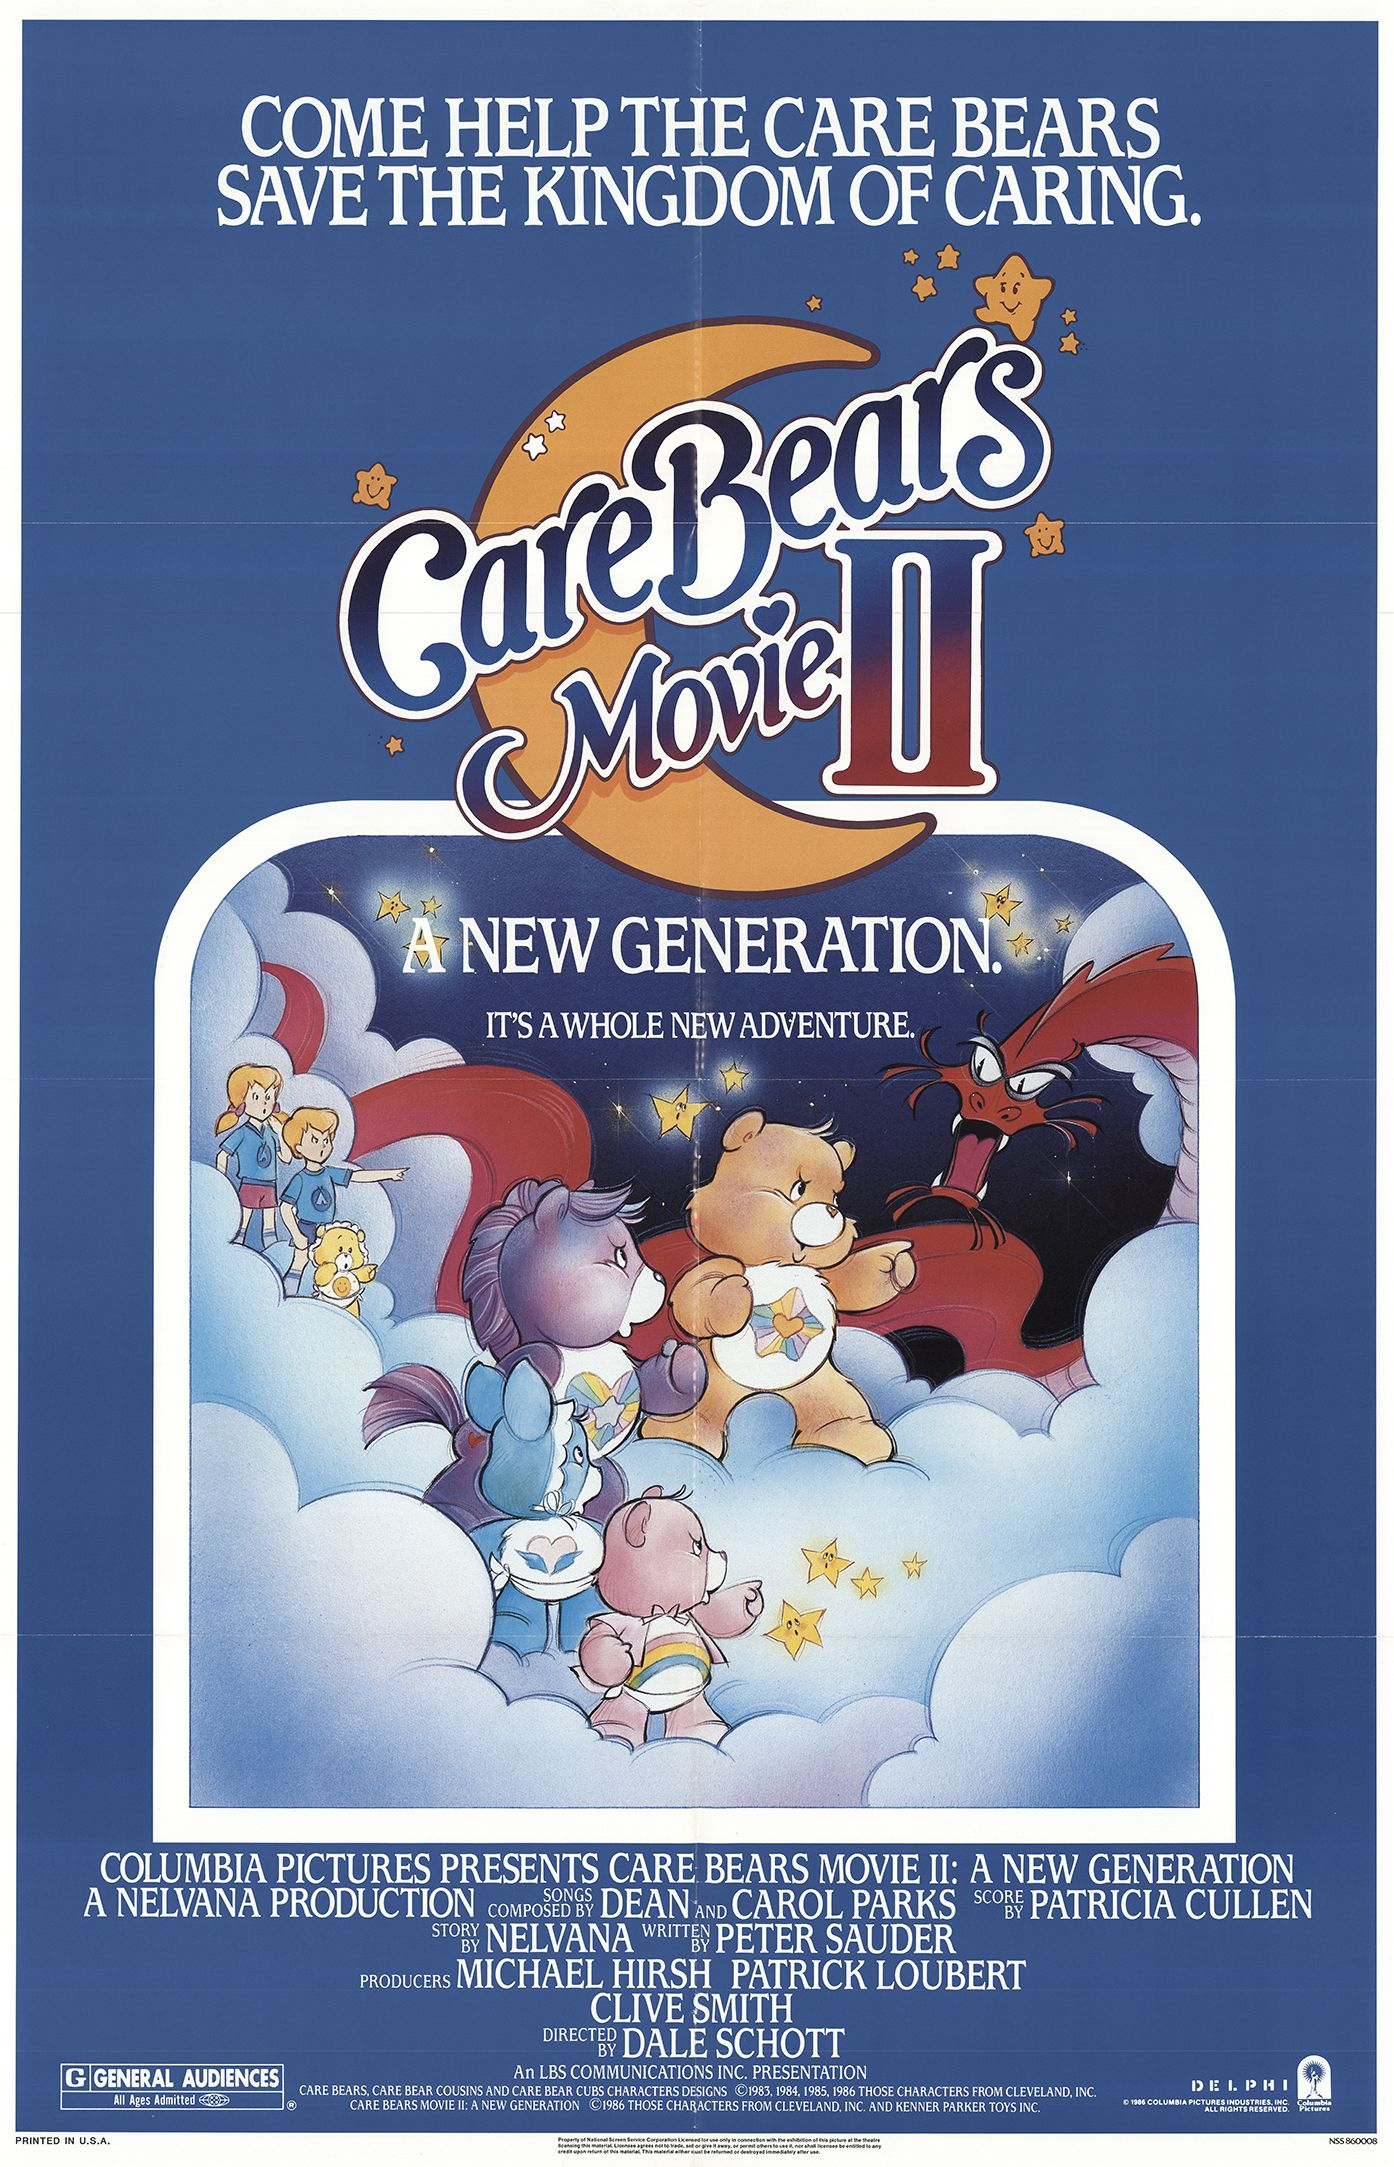 Care Bears Movie II: A New Generation credits